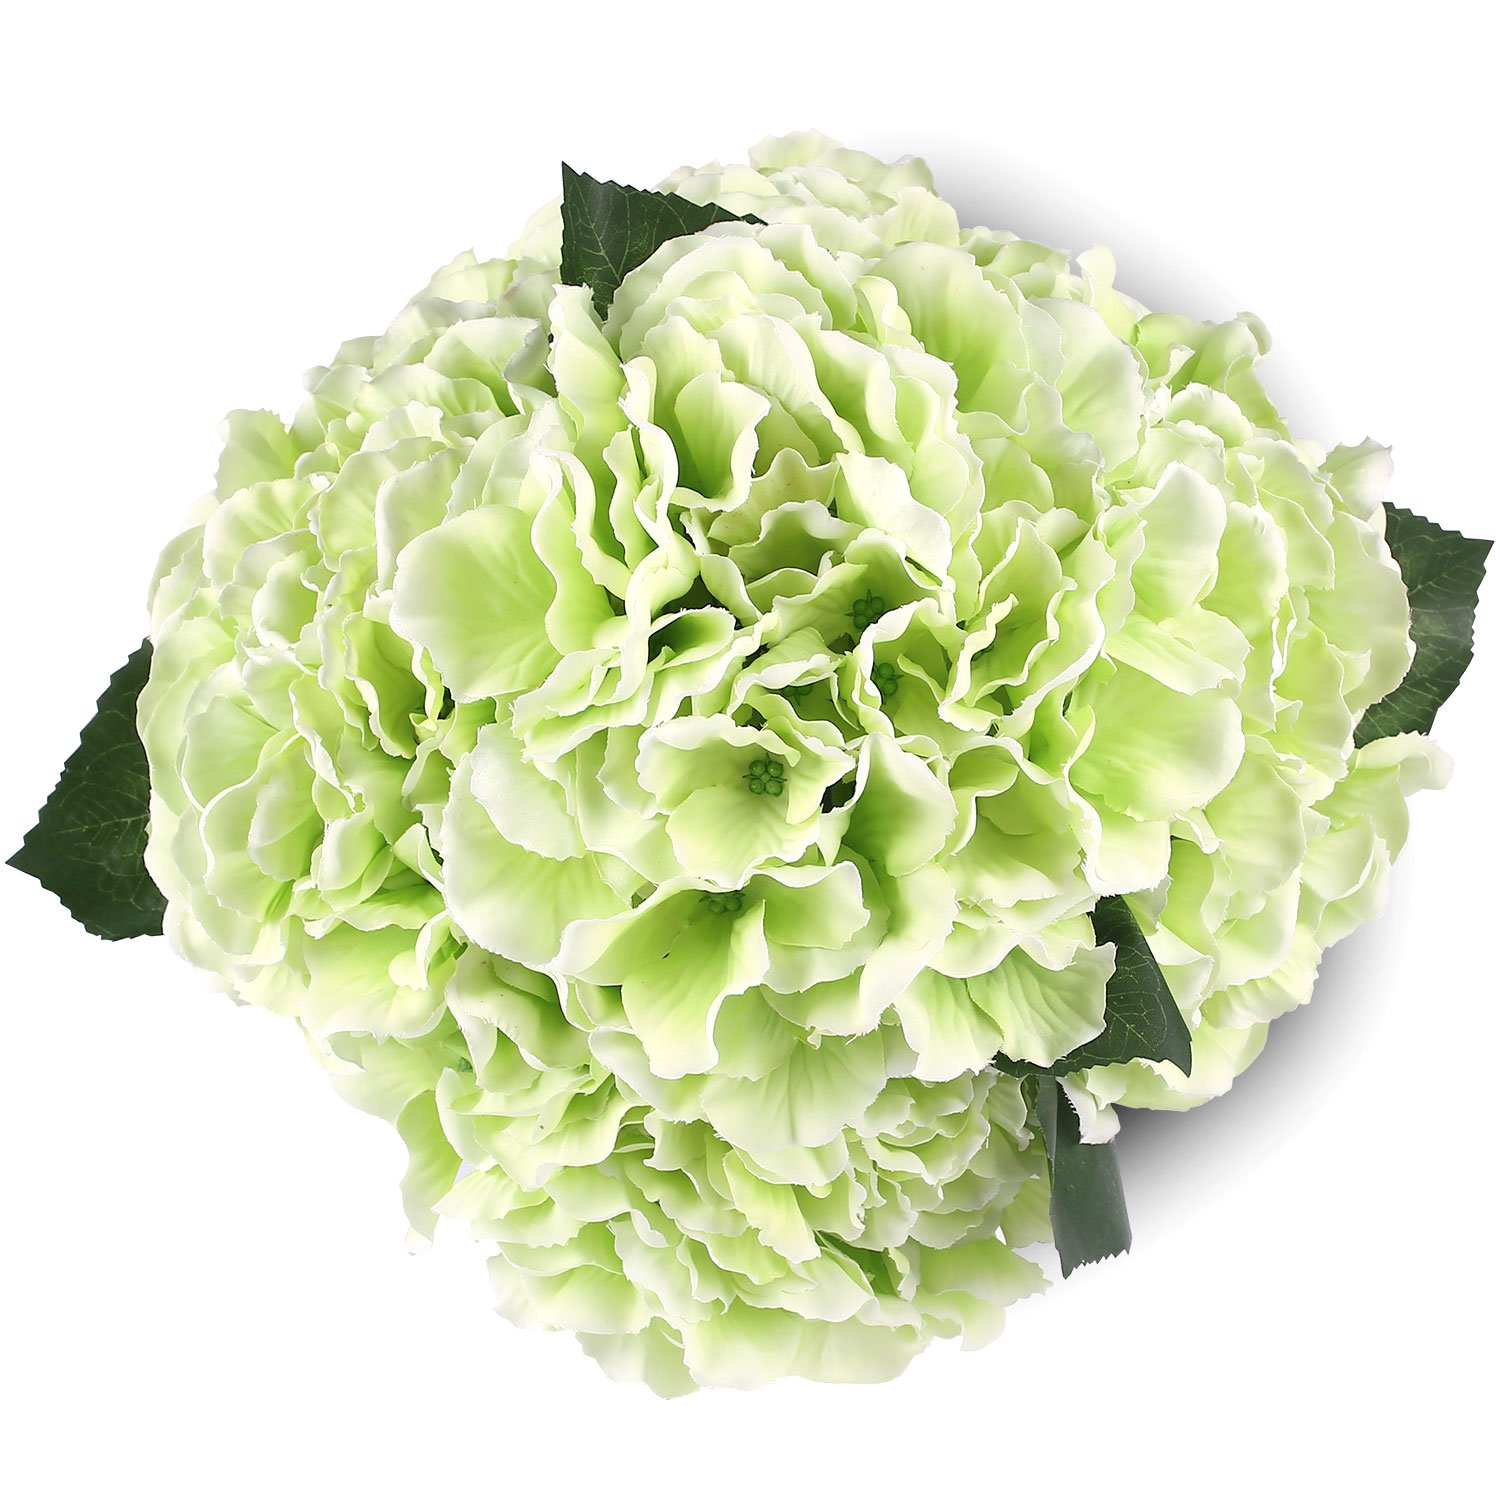 Amazon green artificial hydrangea silk flowers 5 heads soledi amazon green artificial hydrangea silk flowers 5 heads soledi artificial flower arrangements bunch bridal bouquet wedding bouquet for home garden party izmirmasajfo